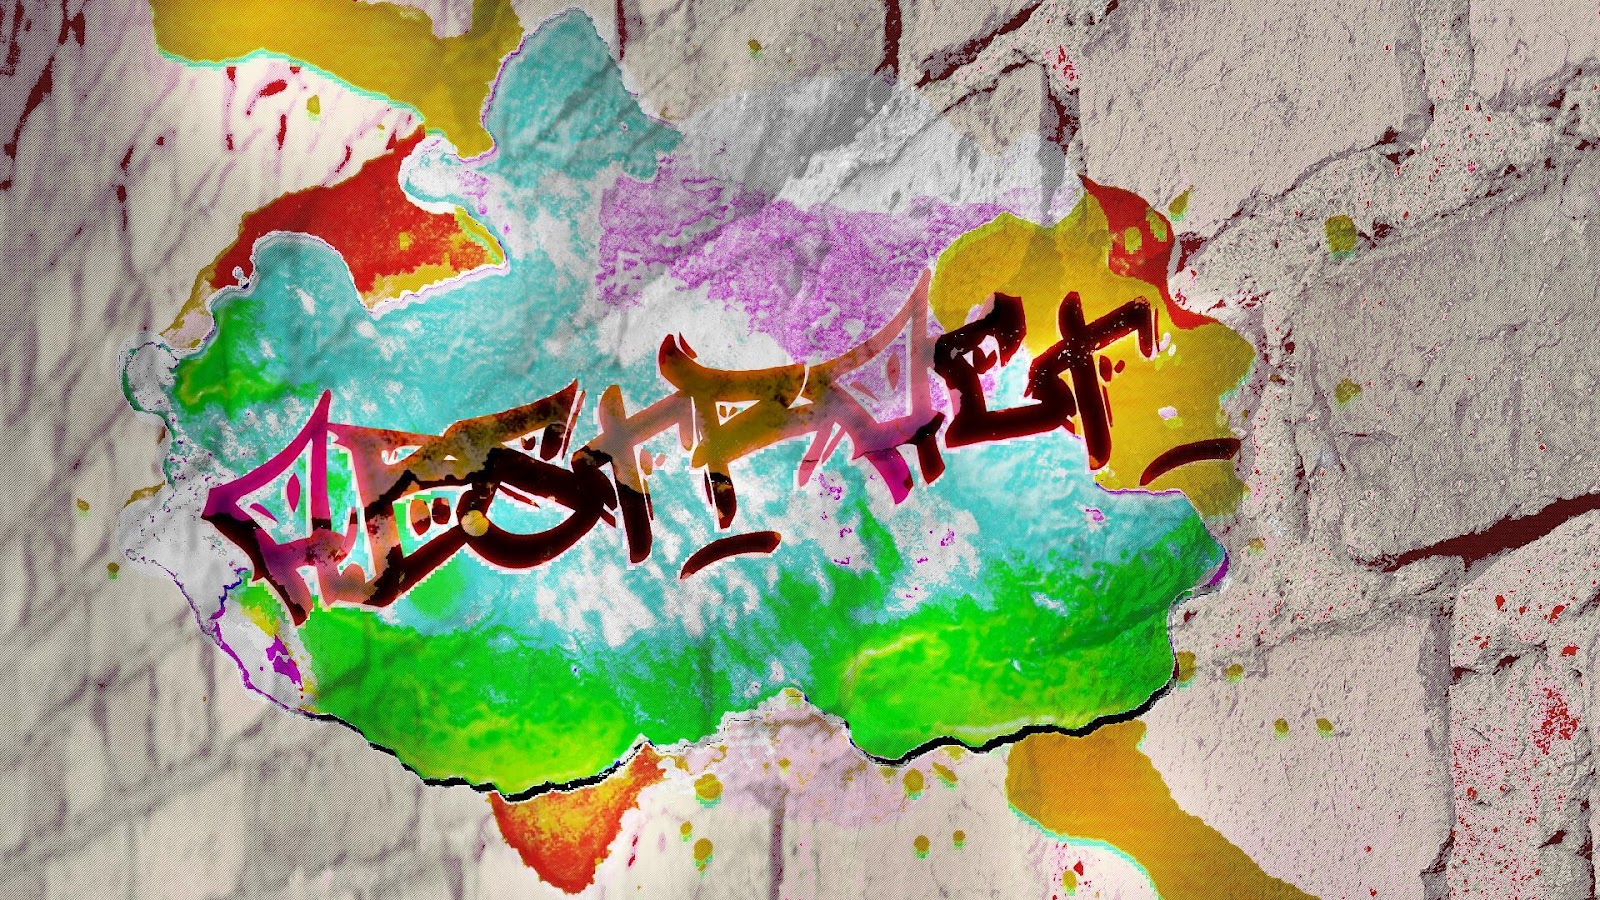 Free High Definition Wallpapers Colorful Graffiti